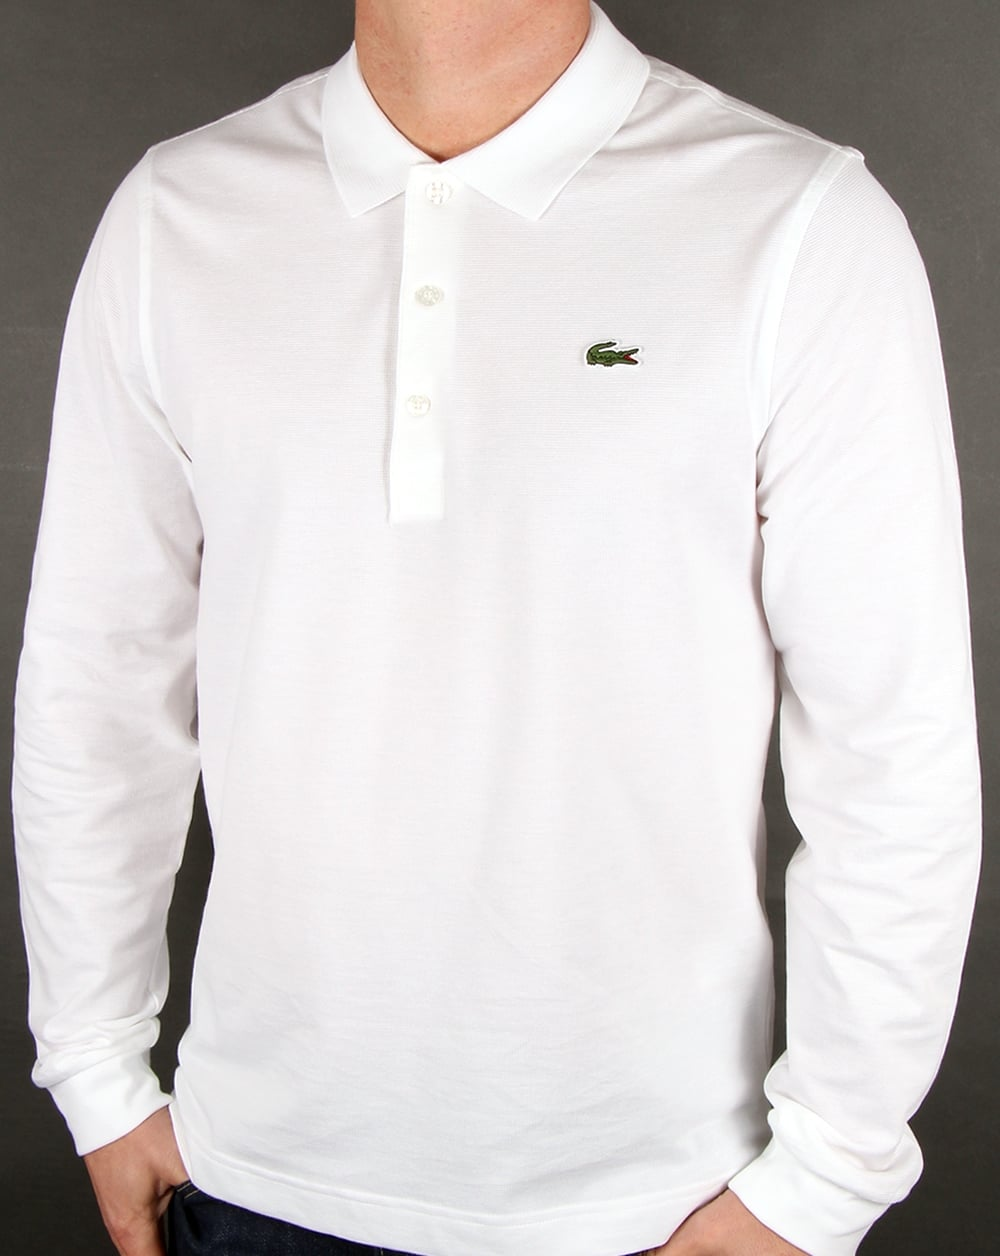 home polo shirts lacoste lacoste long sleeve polo white. Black Bedroom Furniture Sets. Home Design Ideas